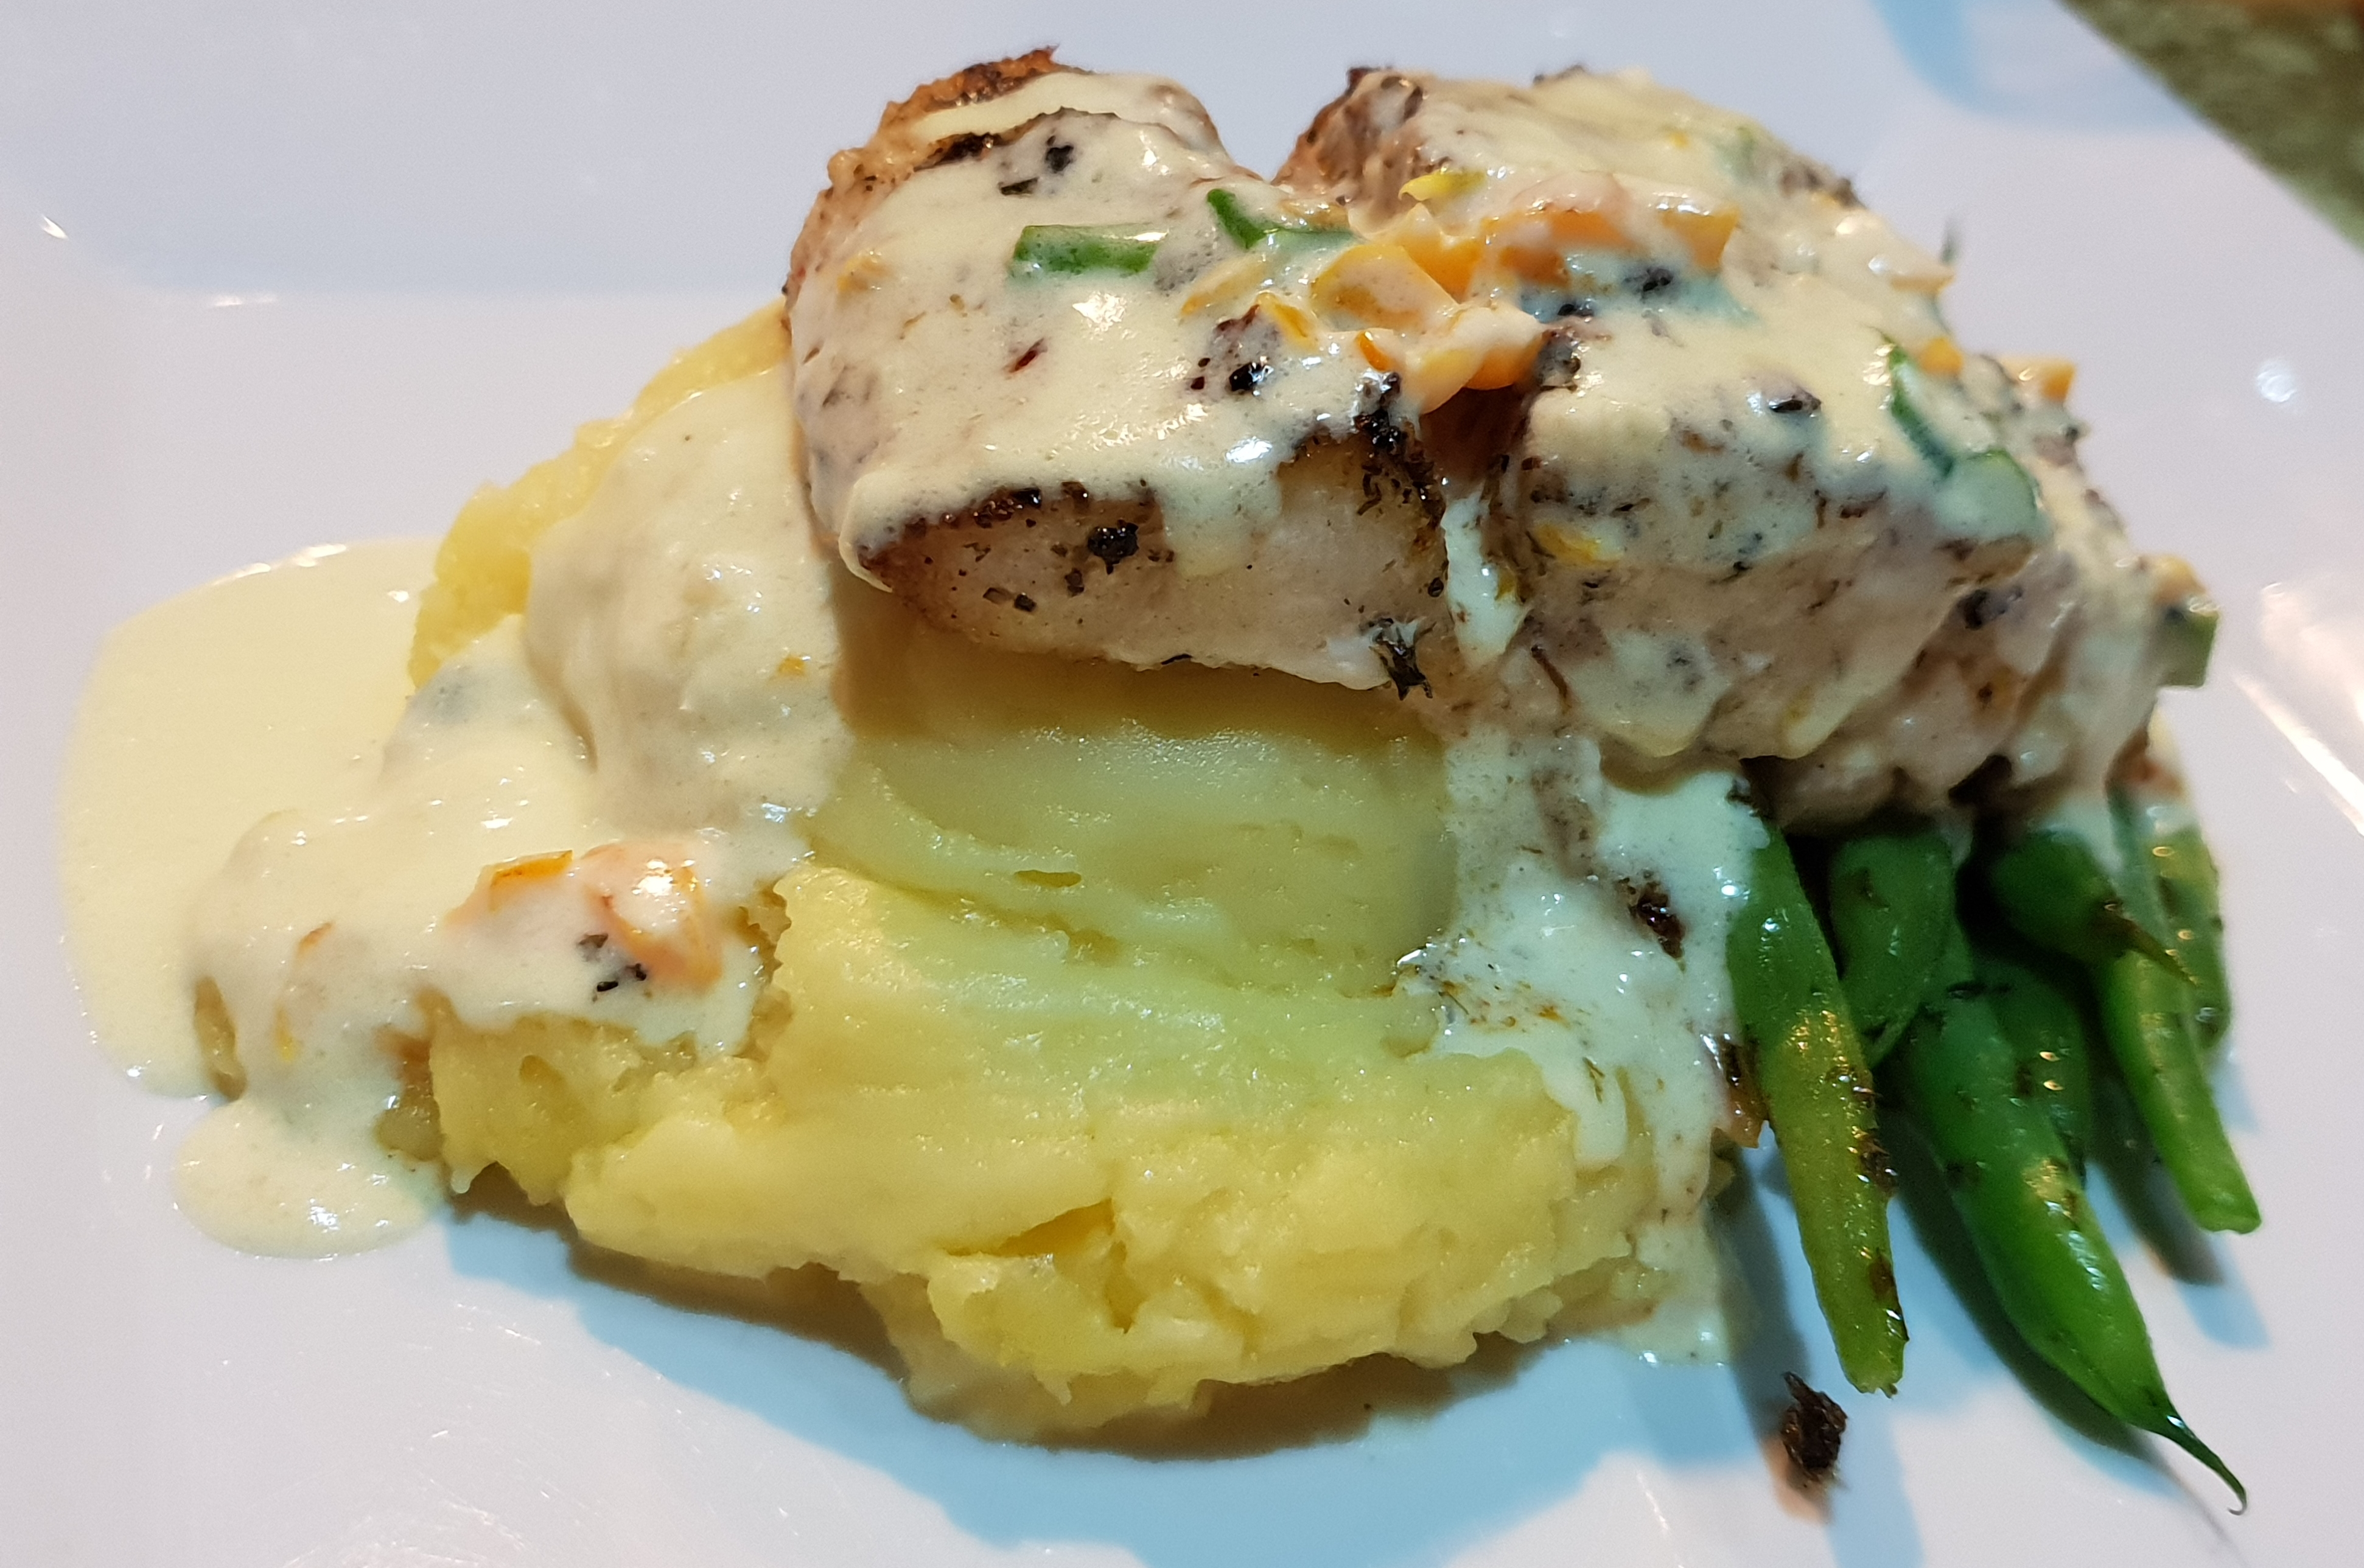 Snapper Fillet served with mashed potatoes.